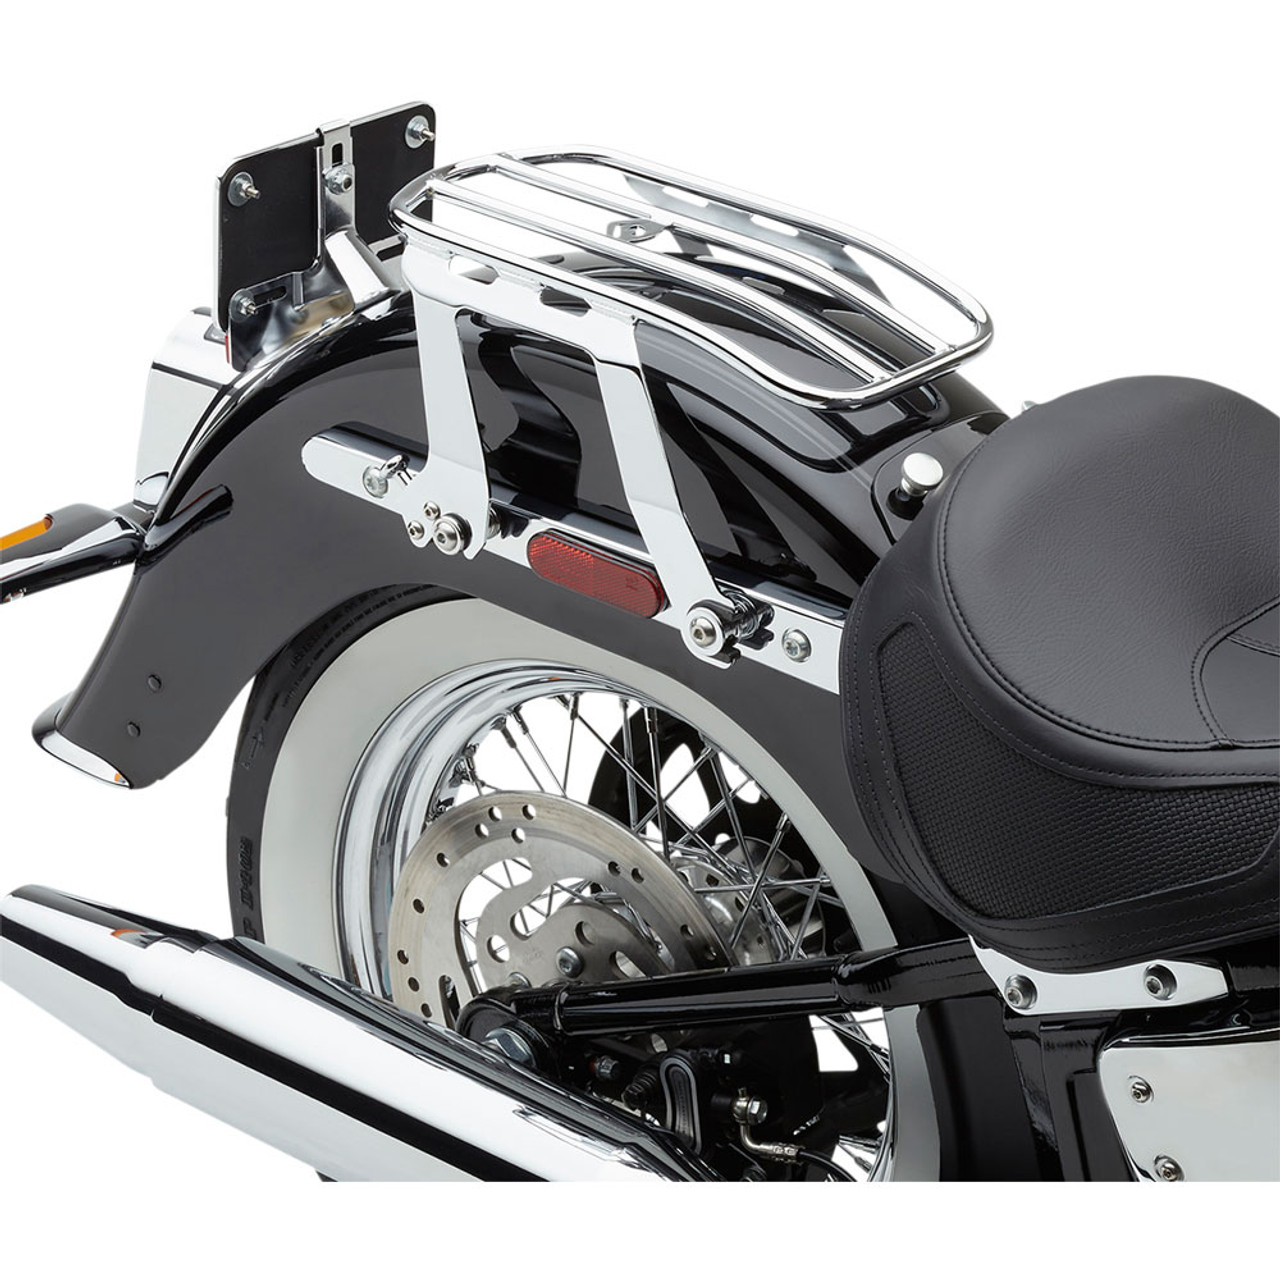 WSays Gloss Black Solo Seat Luggage Mount Rack Compatible with 2018-later Harley Deluxe FLDE Heritage FLHC FLHCS